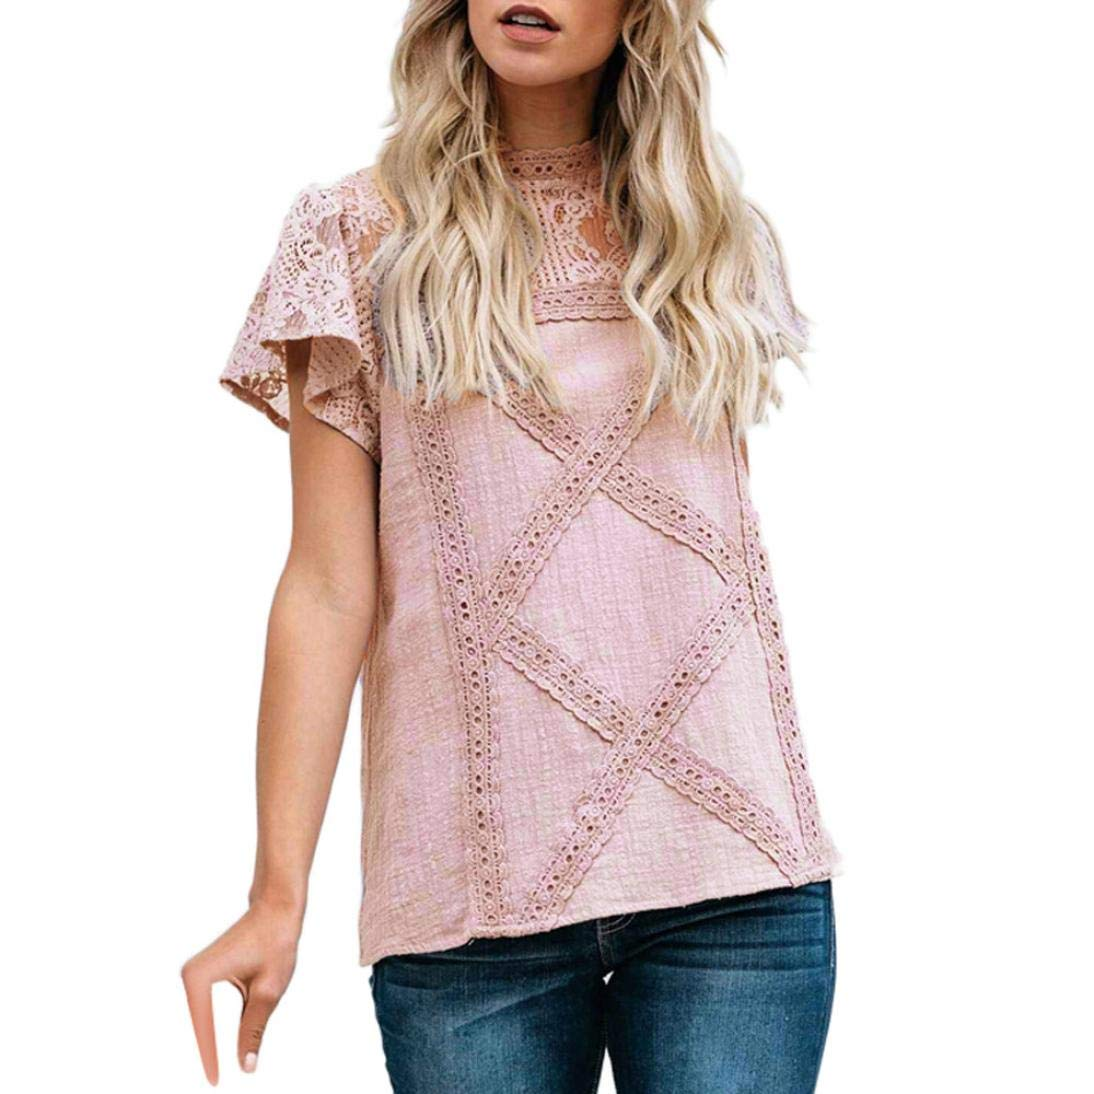 Shirt Womens Lace Flare Ruffles Short Sleeve Cute Floral Top by Gergeos Gergeos-134